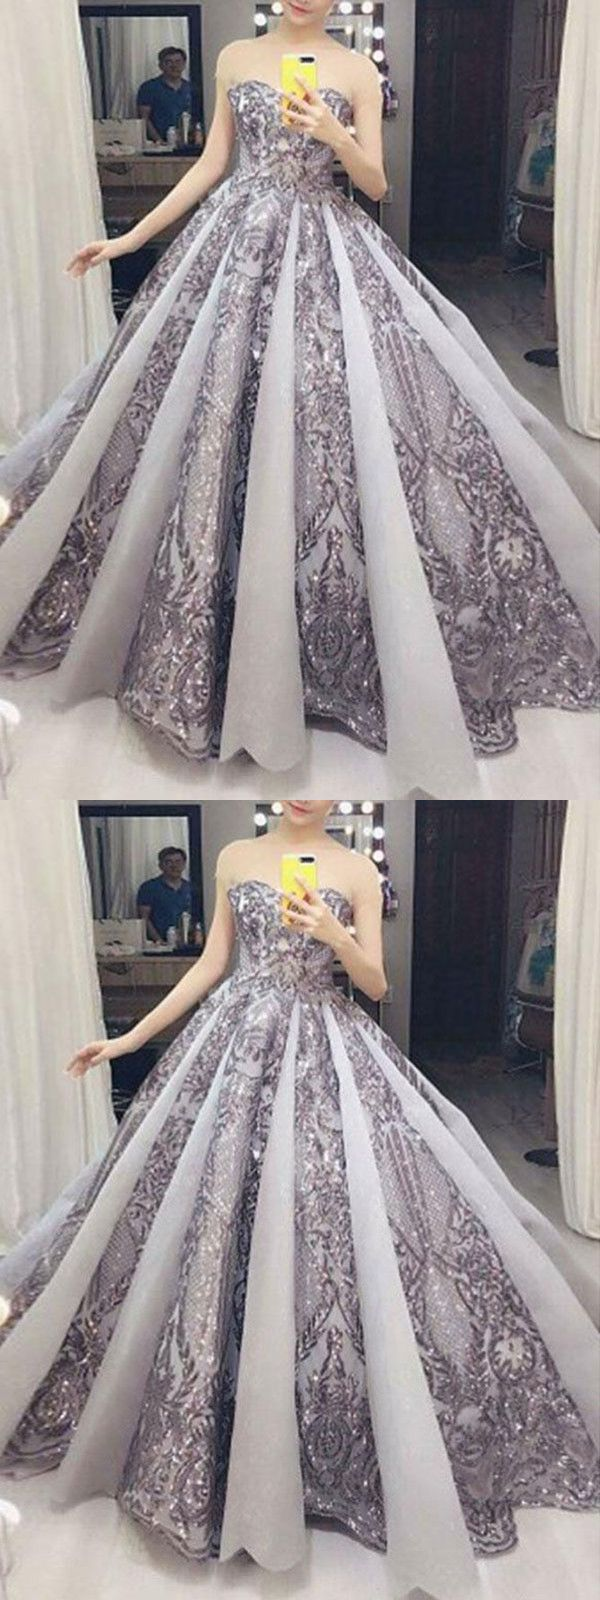 Ball gown vintage prom dress african silver lace beautiful prom